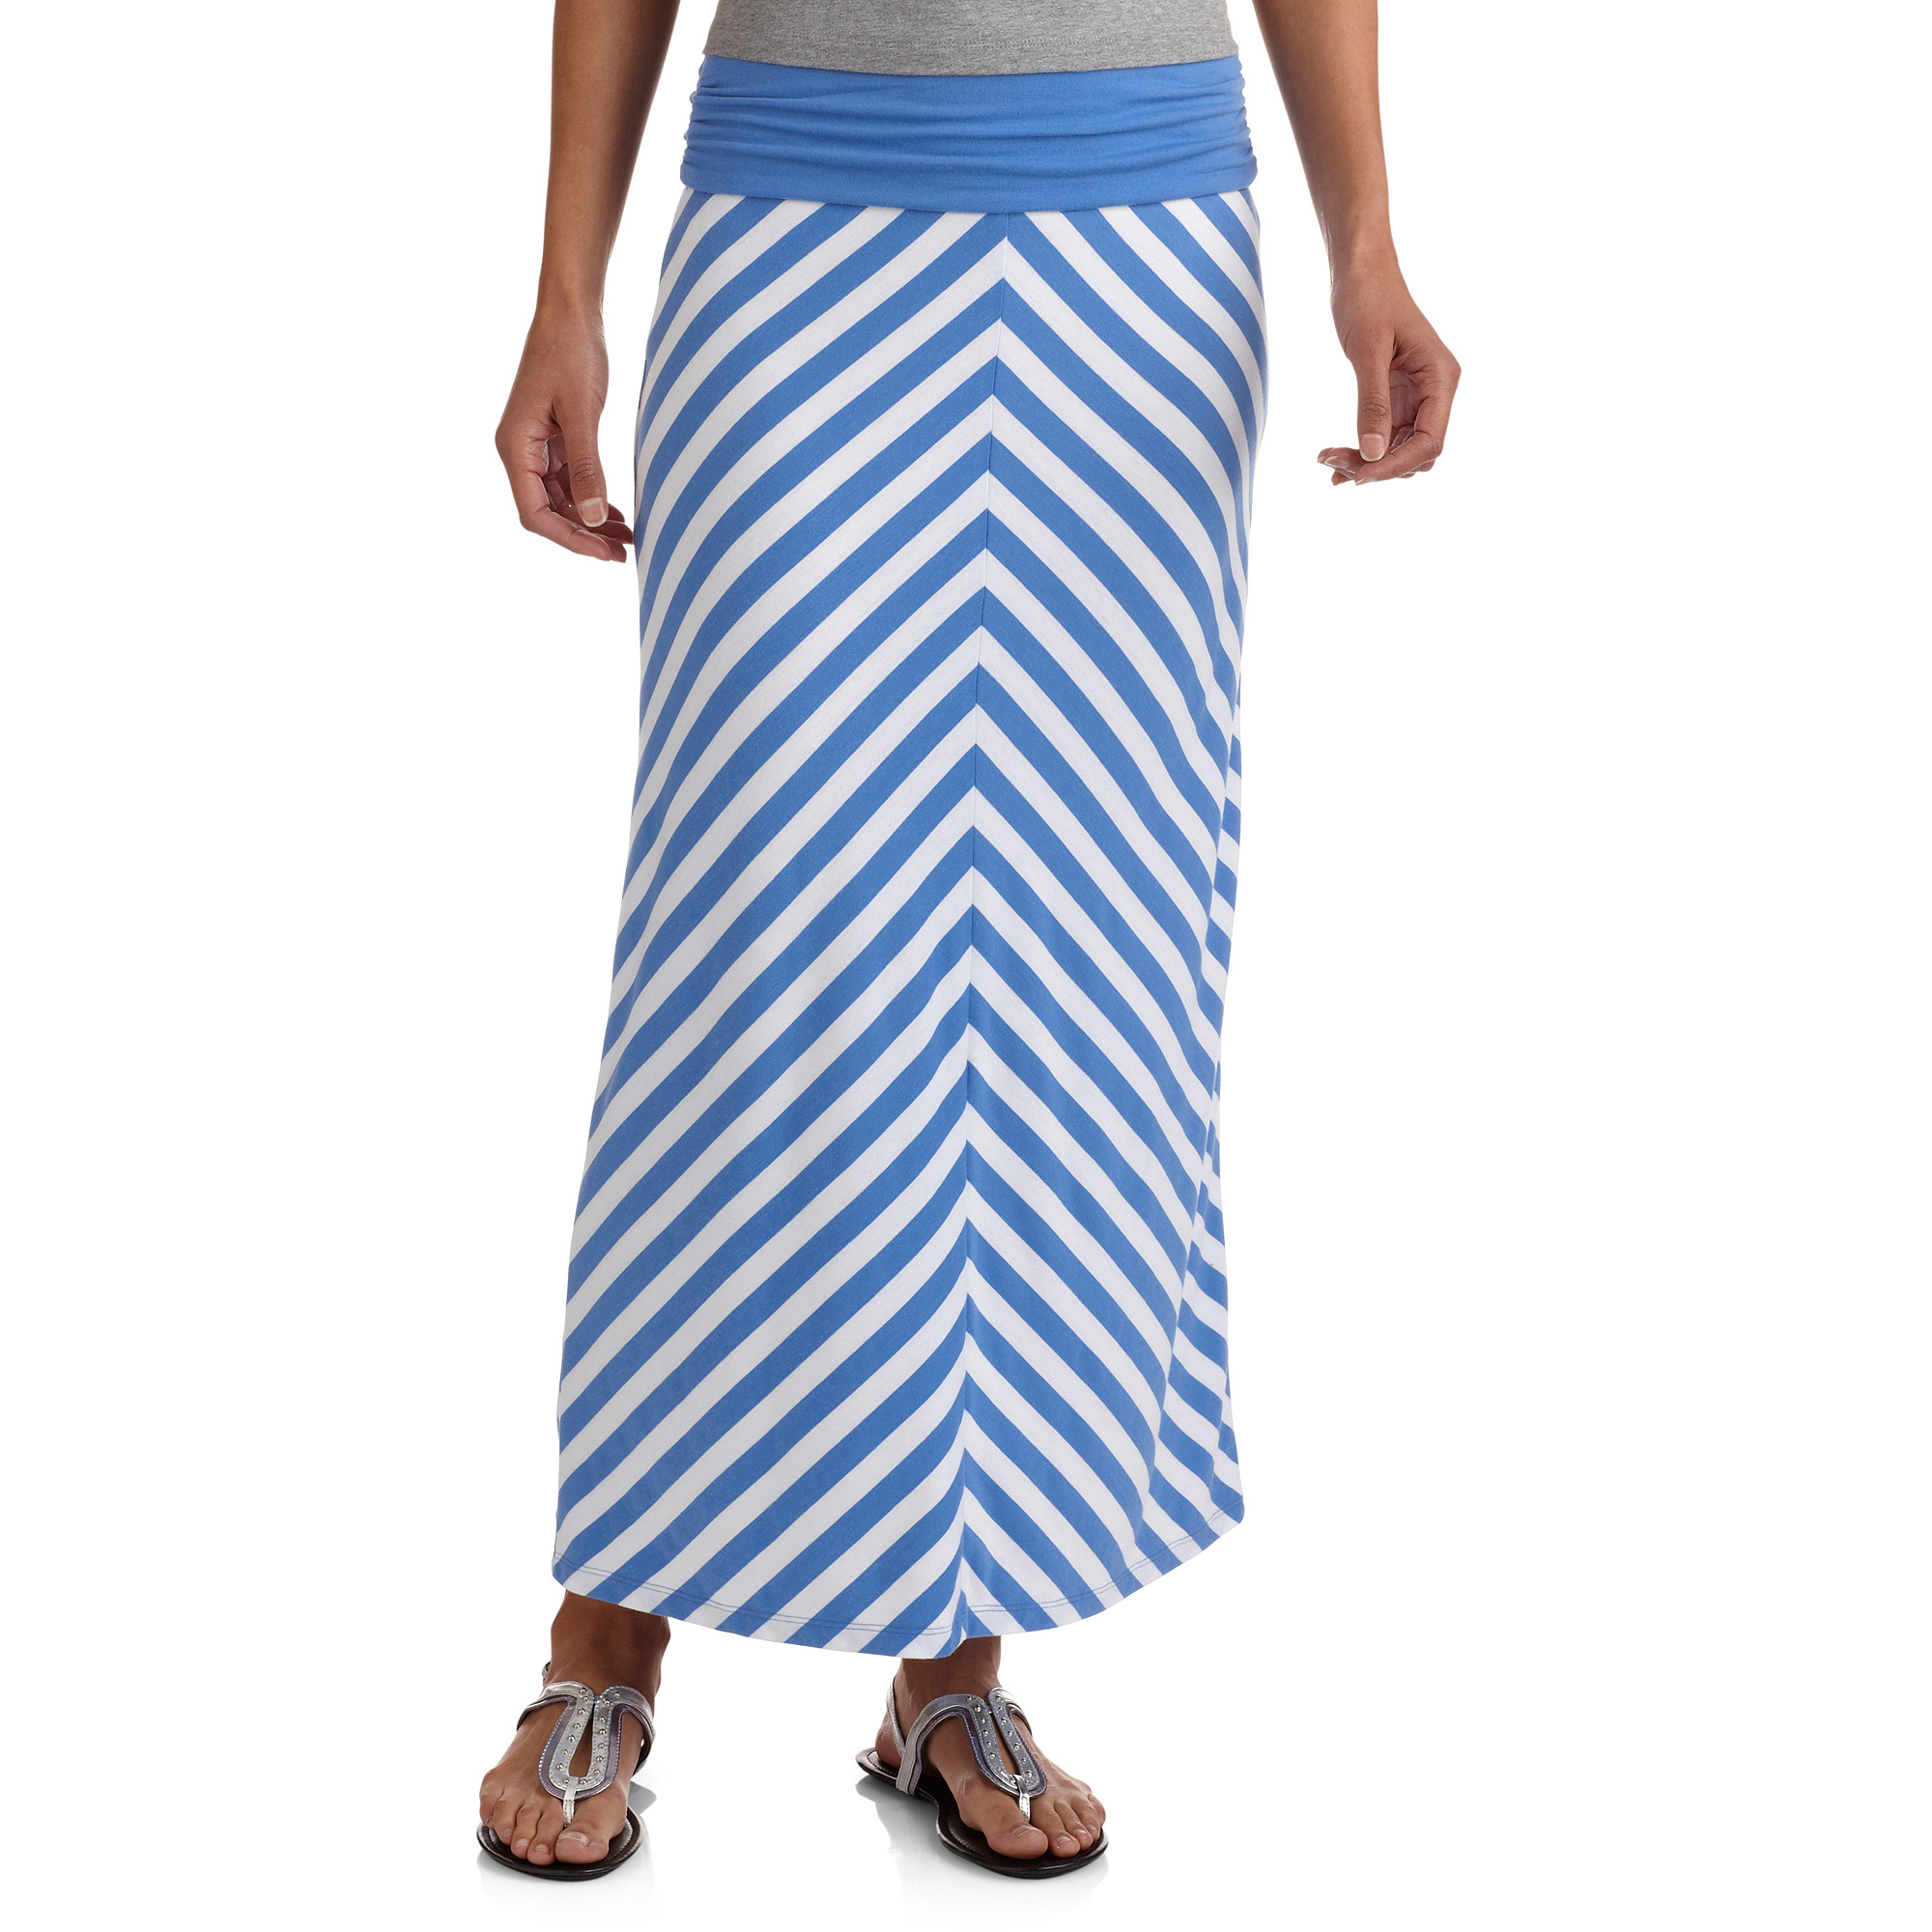 Faded Glory Women's Maxi Skirt with Shirred Waistband